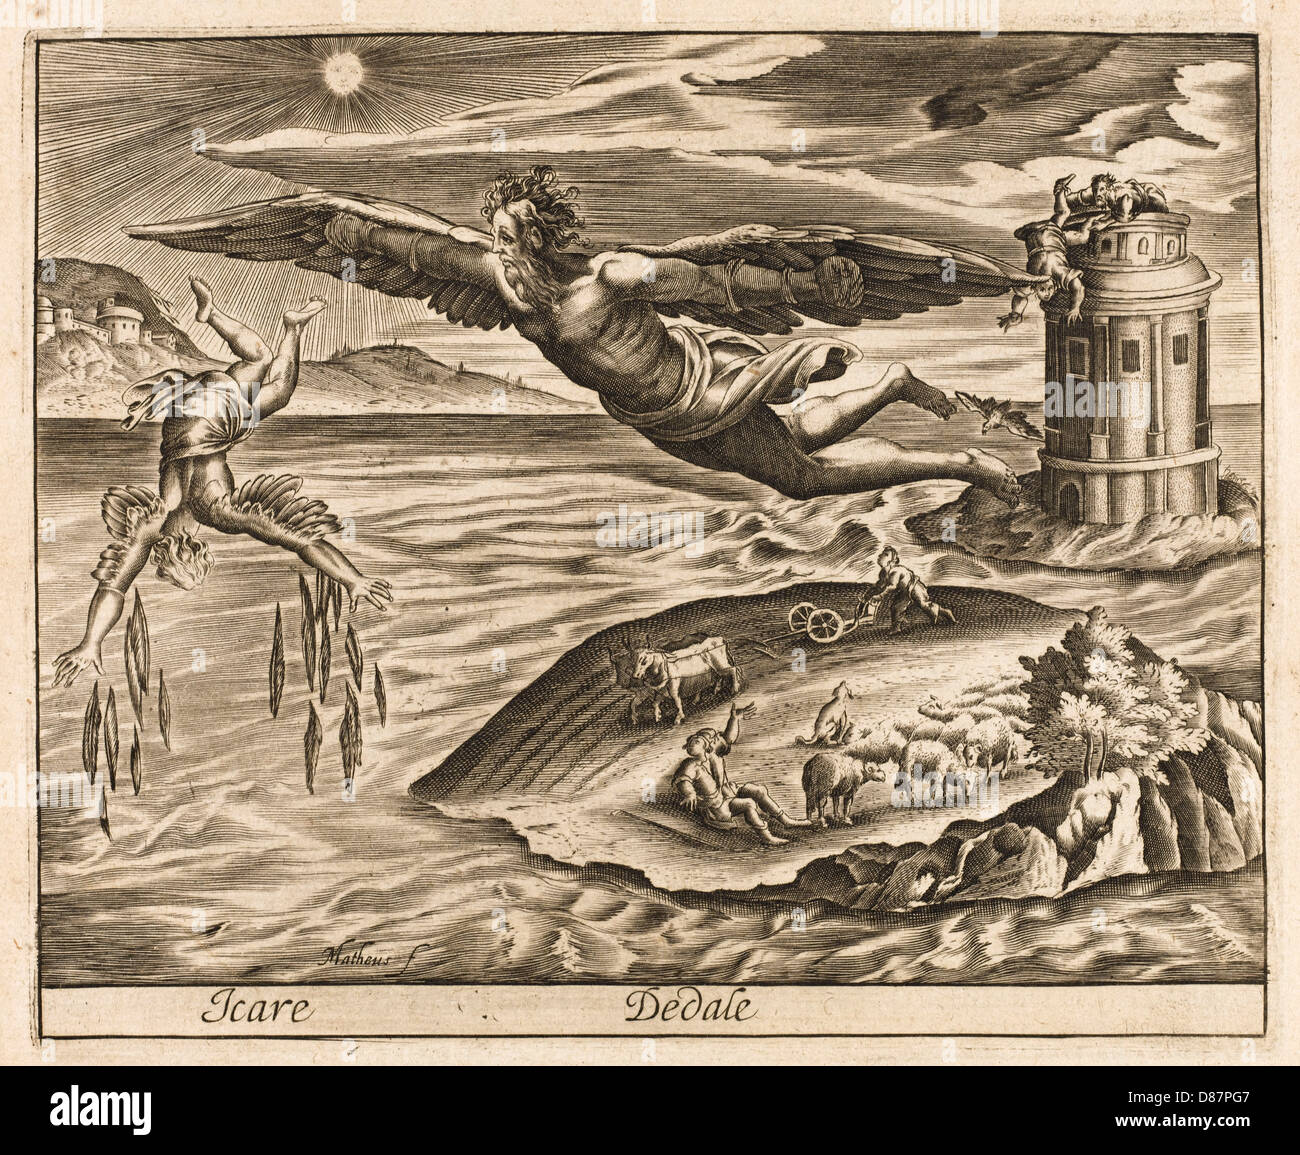 Icarus And Daedalus - Stock Image